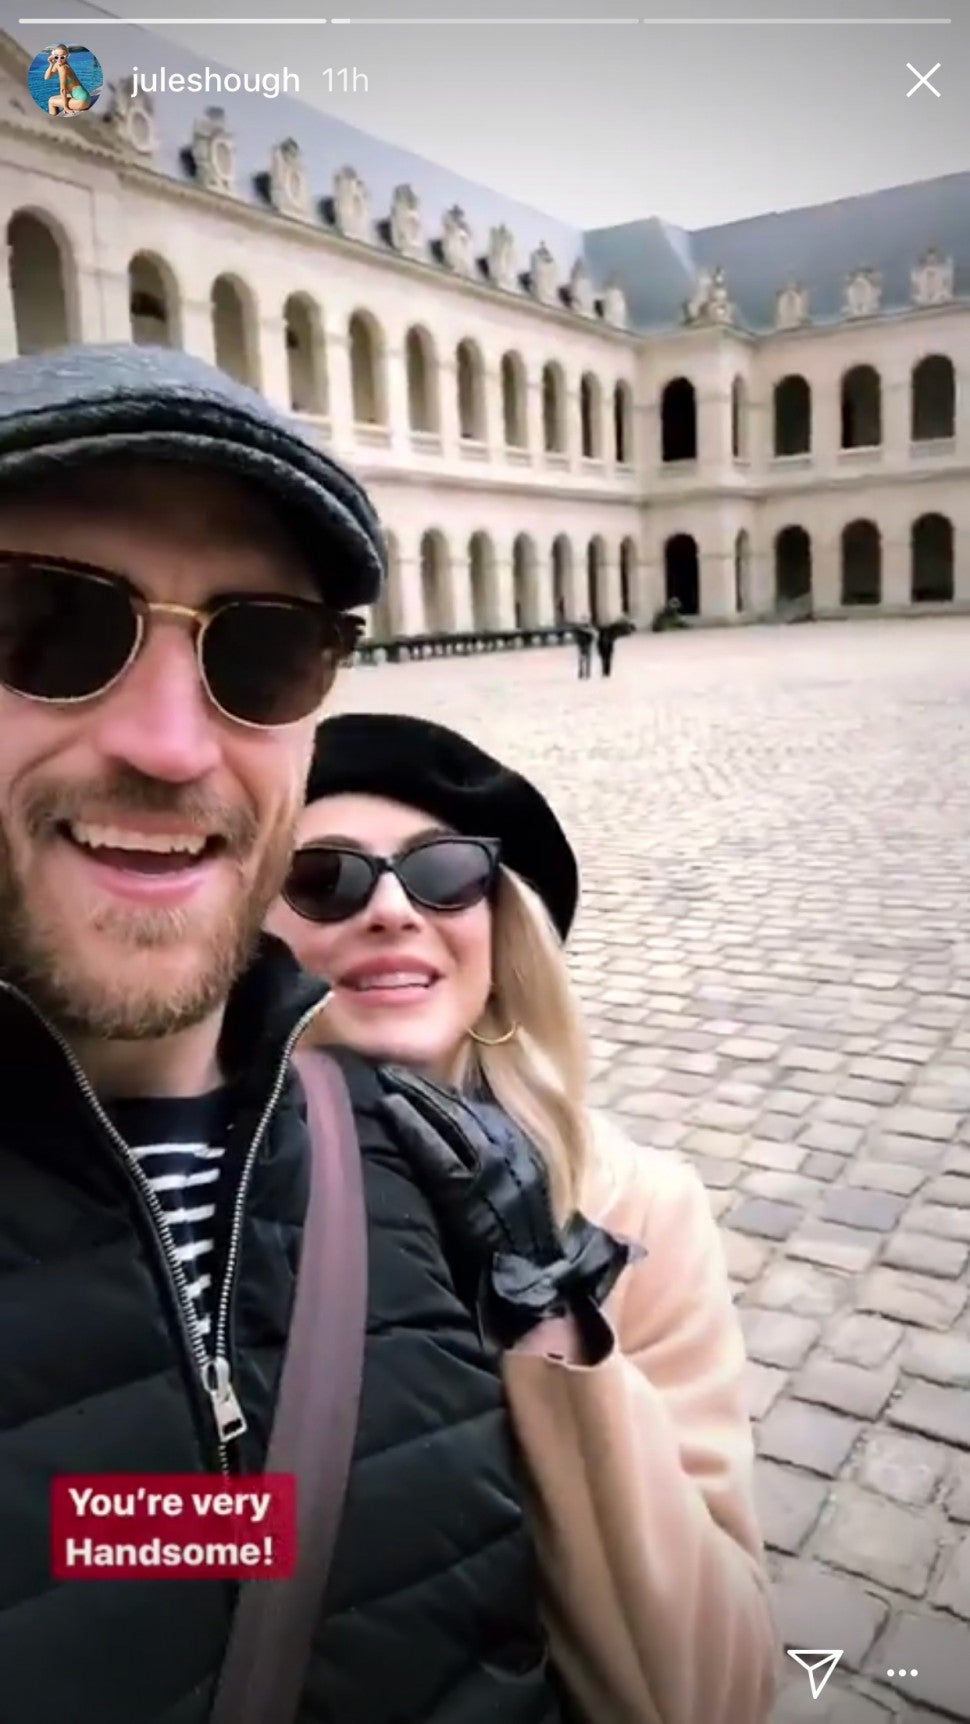 Julianne Hough and husband, Brooks Laich, share some intimate photos from Paris